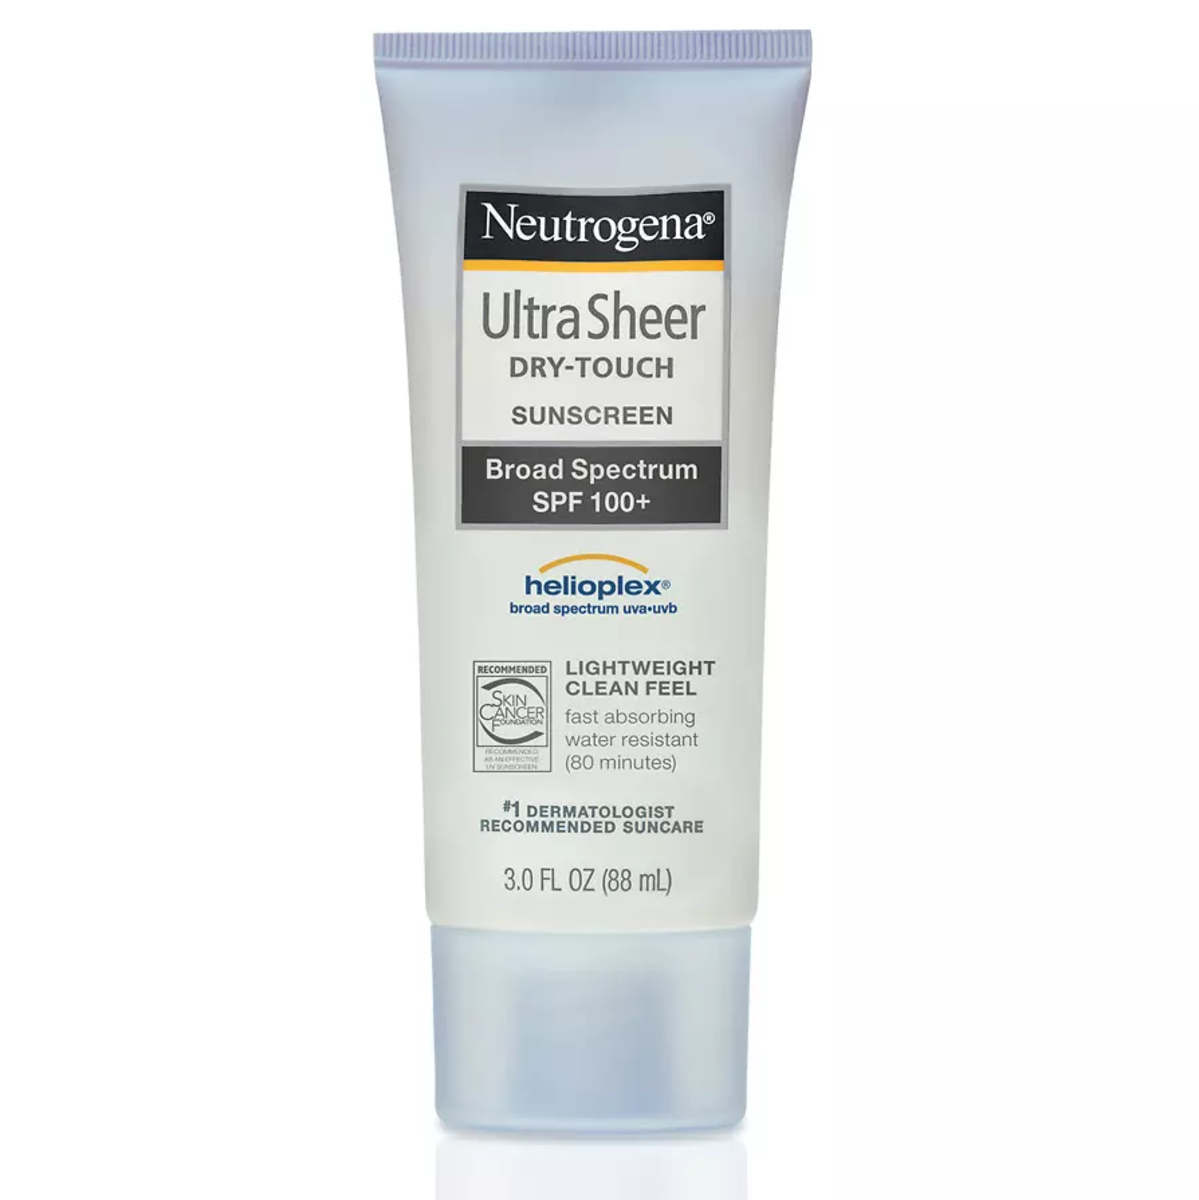 Neutrogena Ultra Sheer Dry-Touch Sunscreen, $12.99, available at Ulta